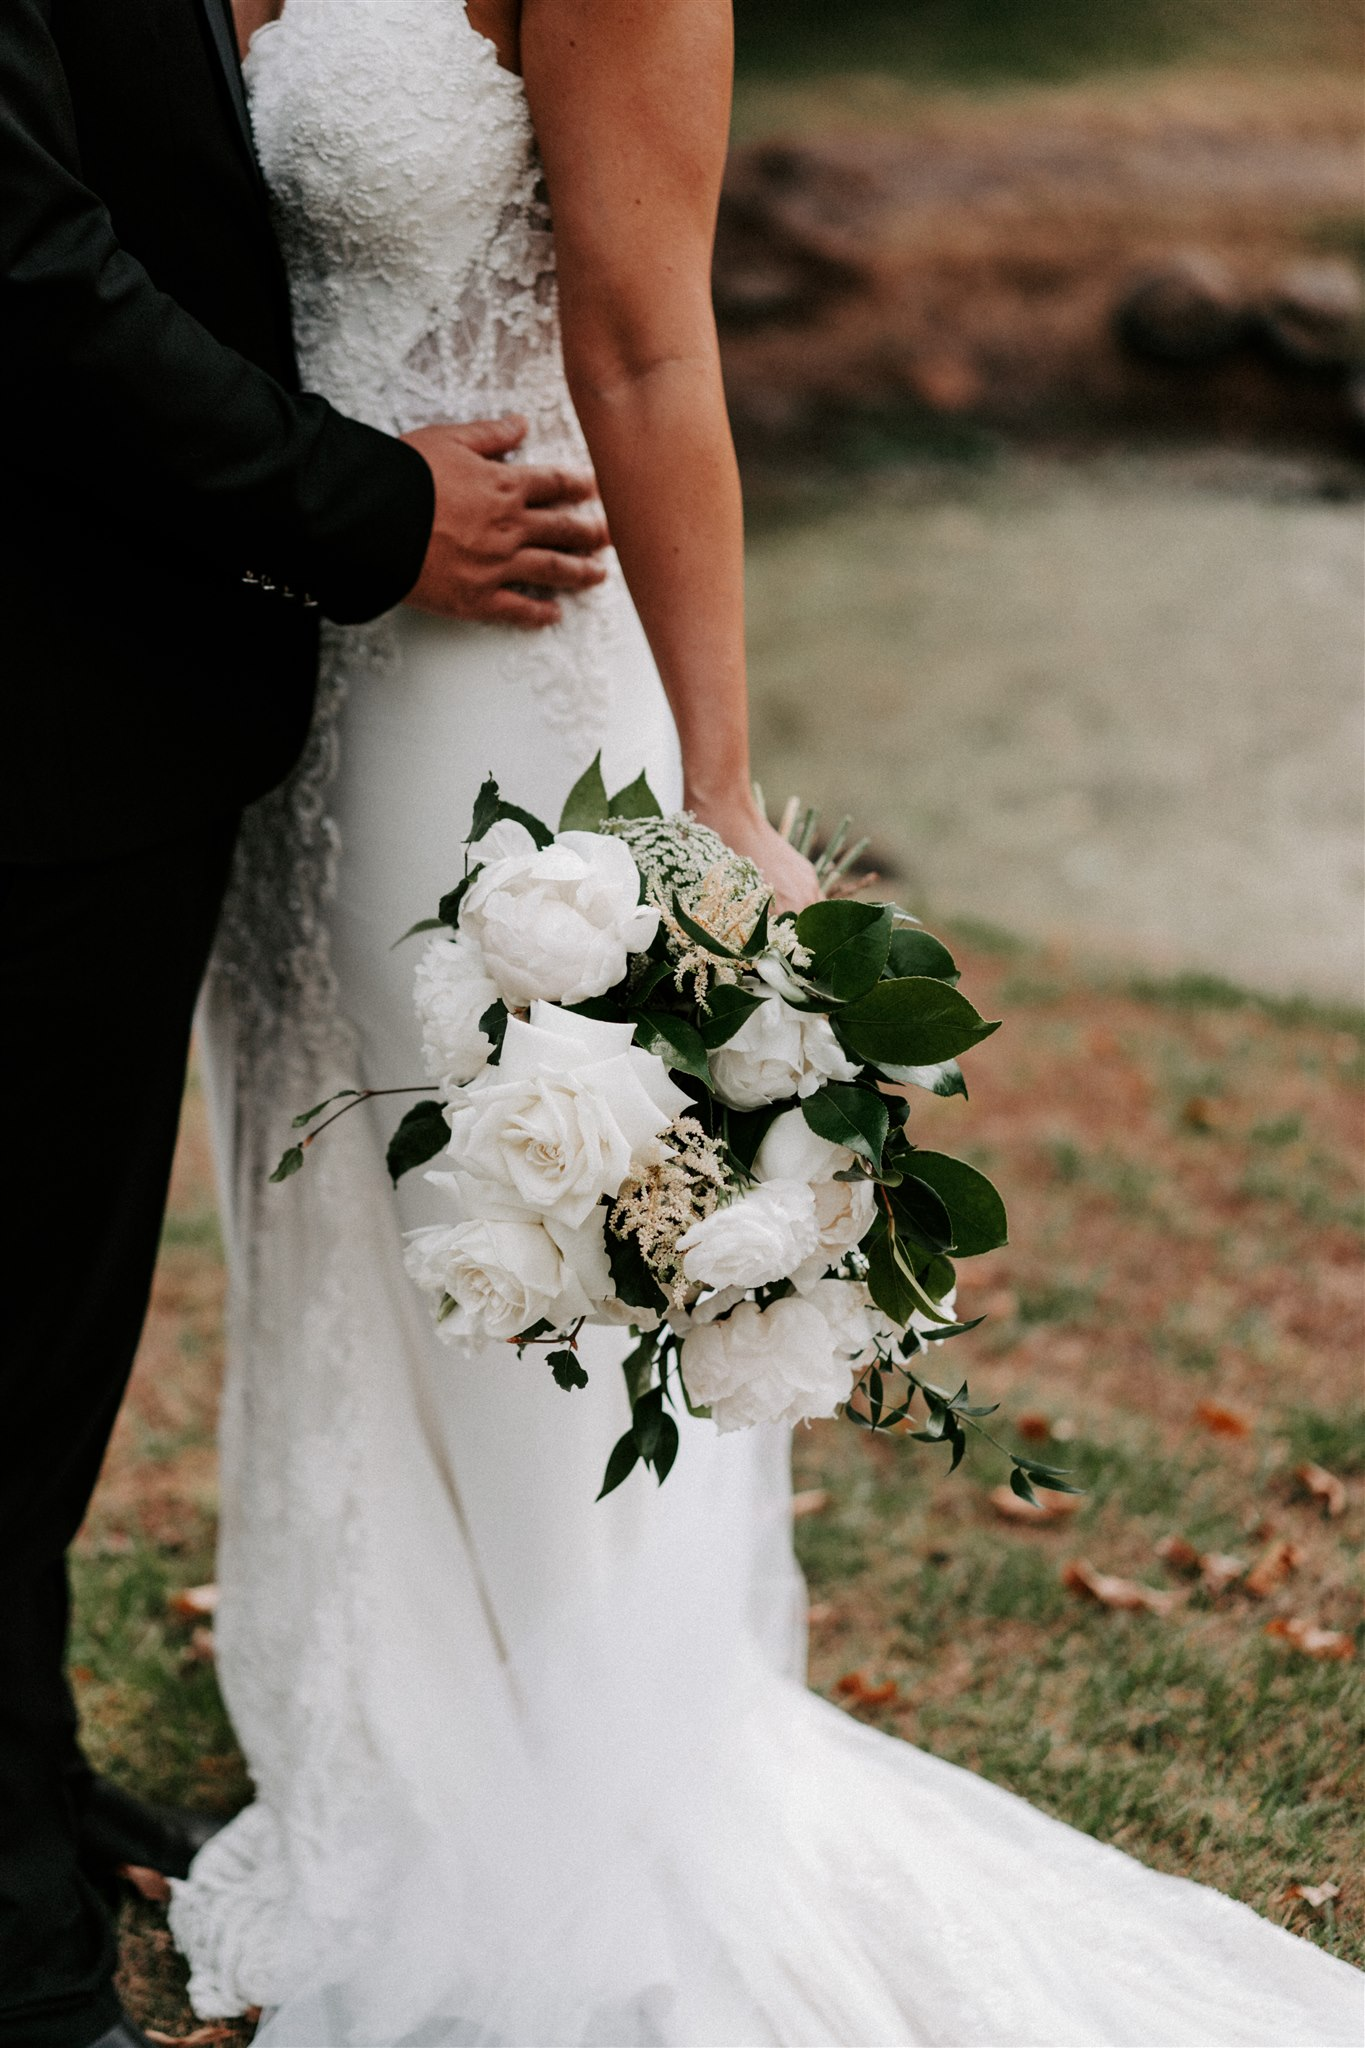 White wedding bouquets in white and lush green tones